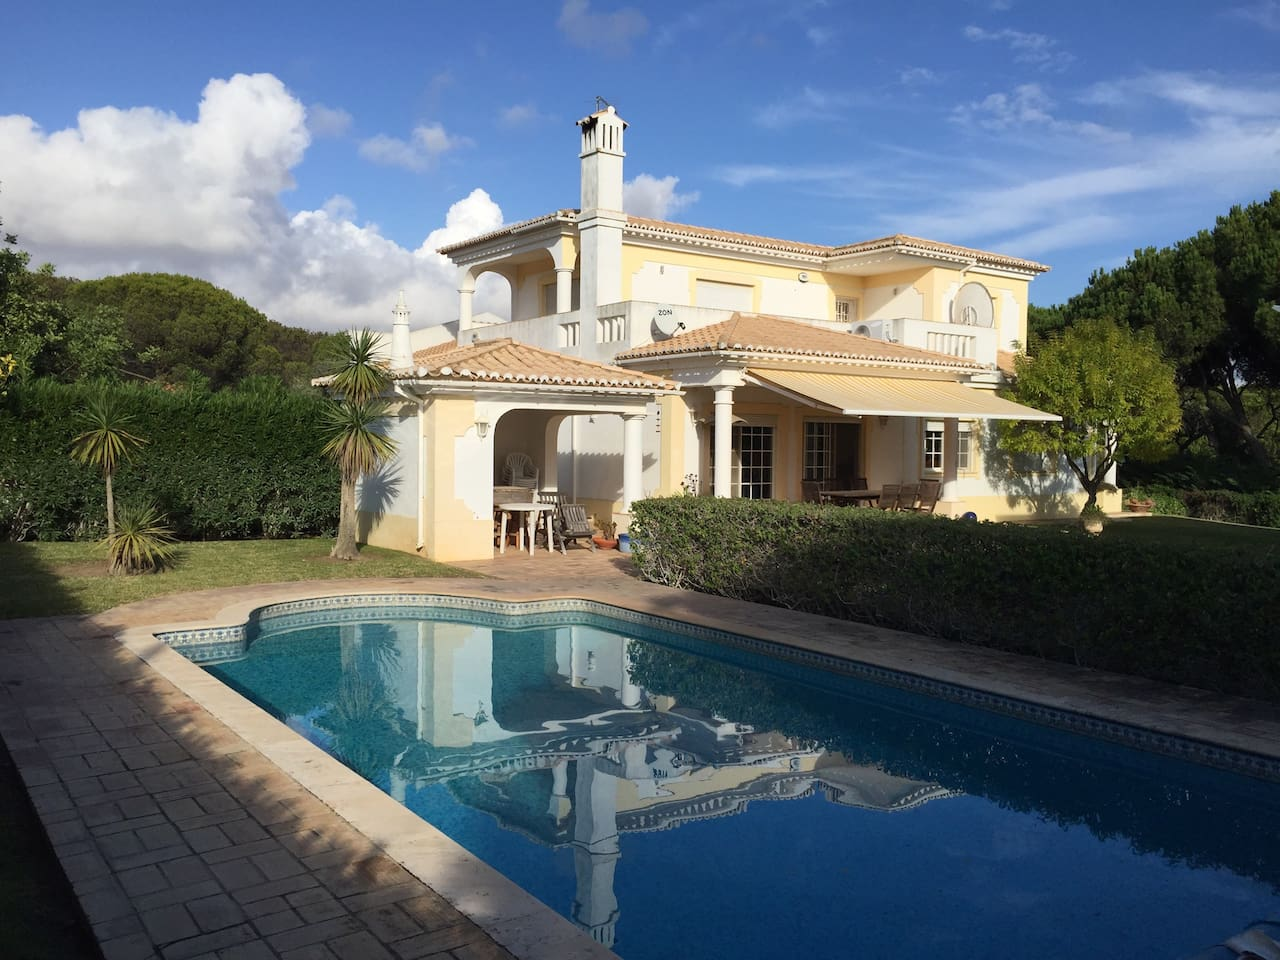 Big garden and pool with lovely outdoor space for eating and sun bathing, includes outdoor barbecue area